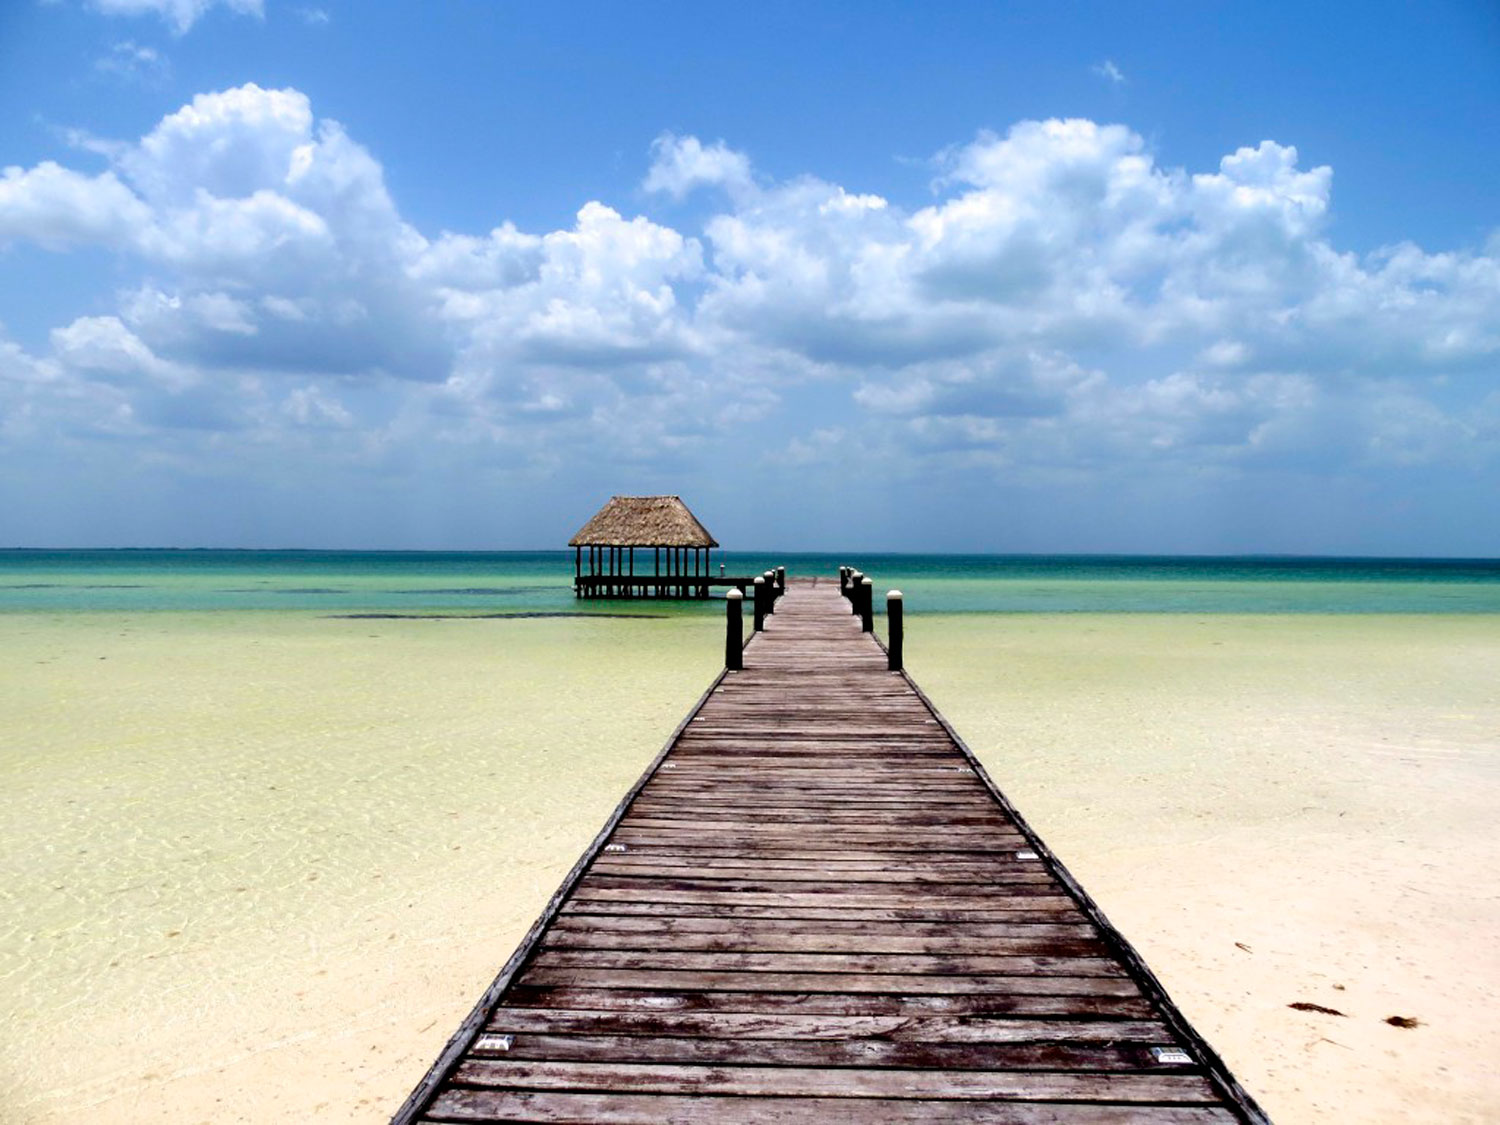 Hammocks_and_Ruins_Riviera_Maya_What_to_Do_Cancun_Playa_Del_Carmen_Islands_Isla_Holbox_38.jpg